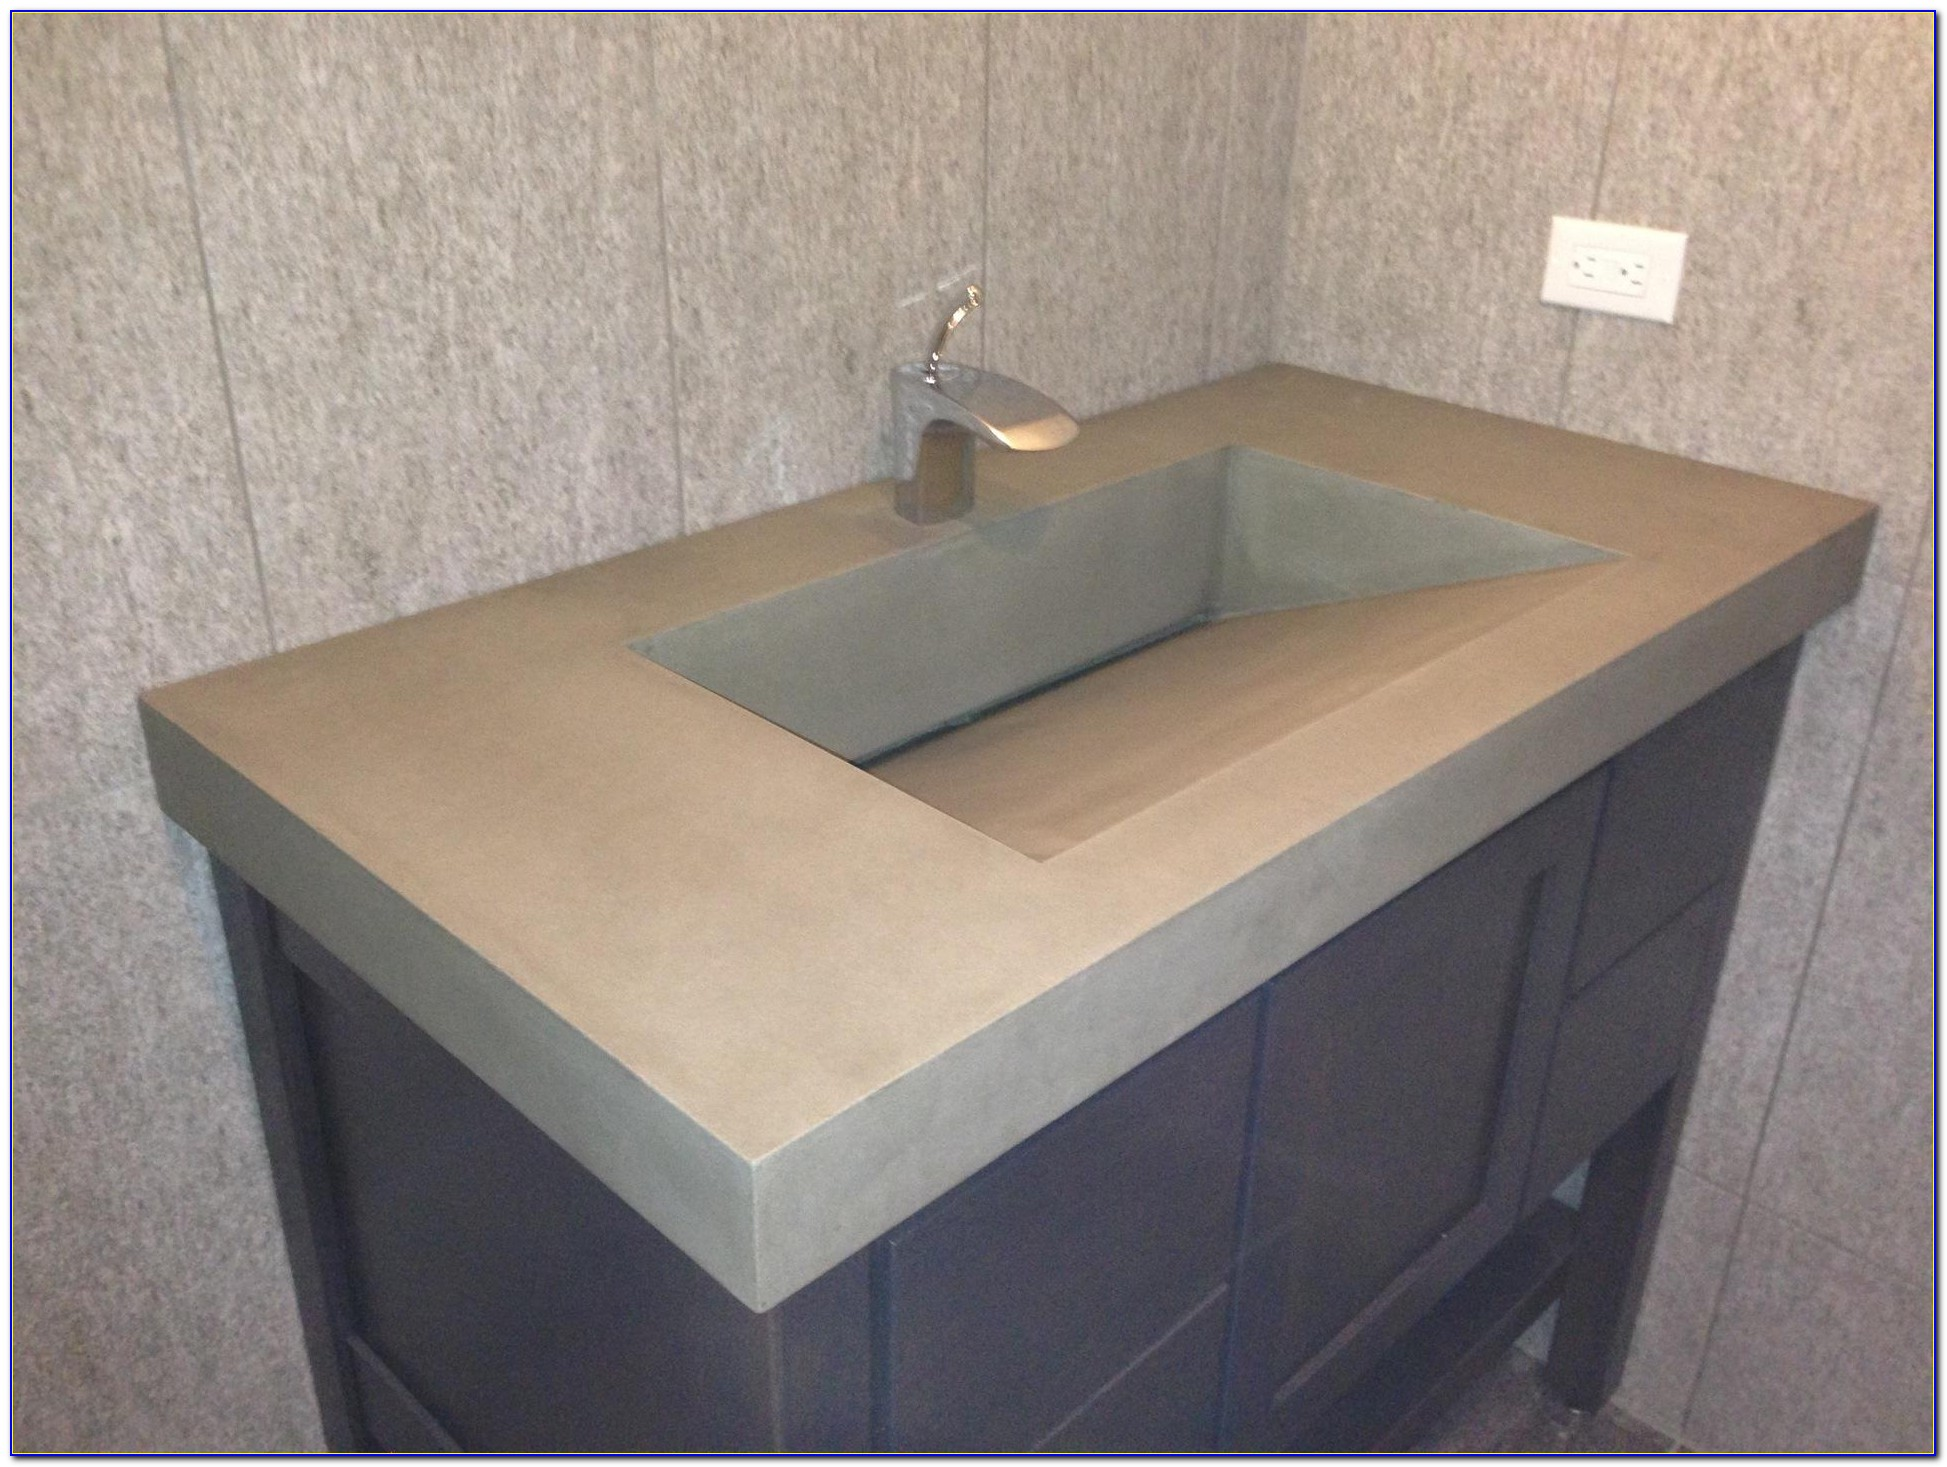 Double Faucet Undermount Trough Sink